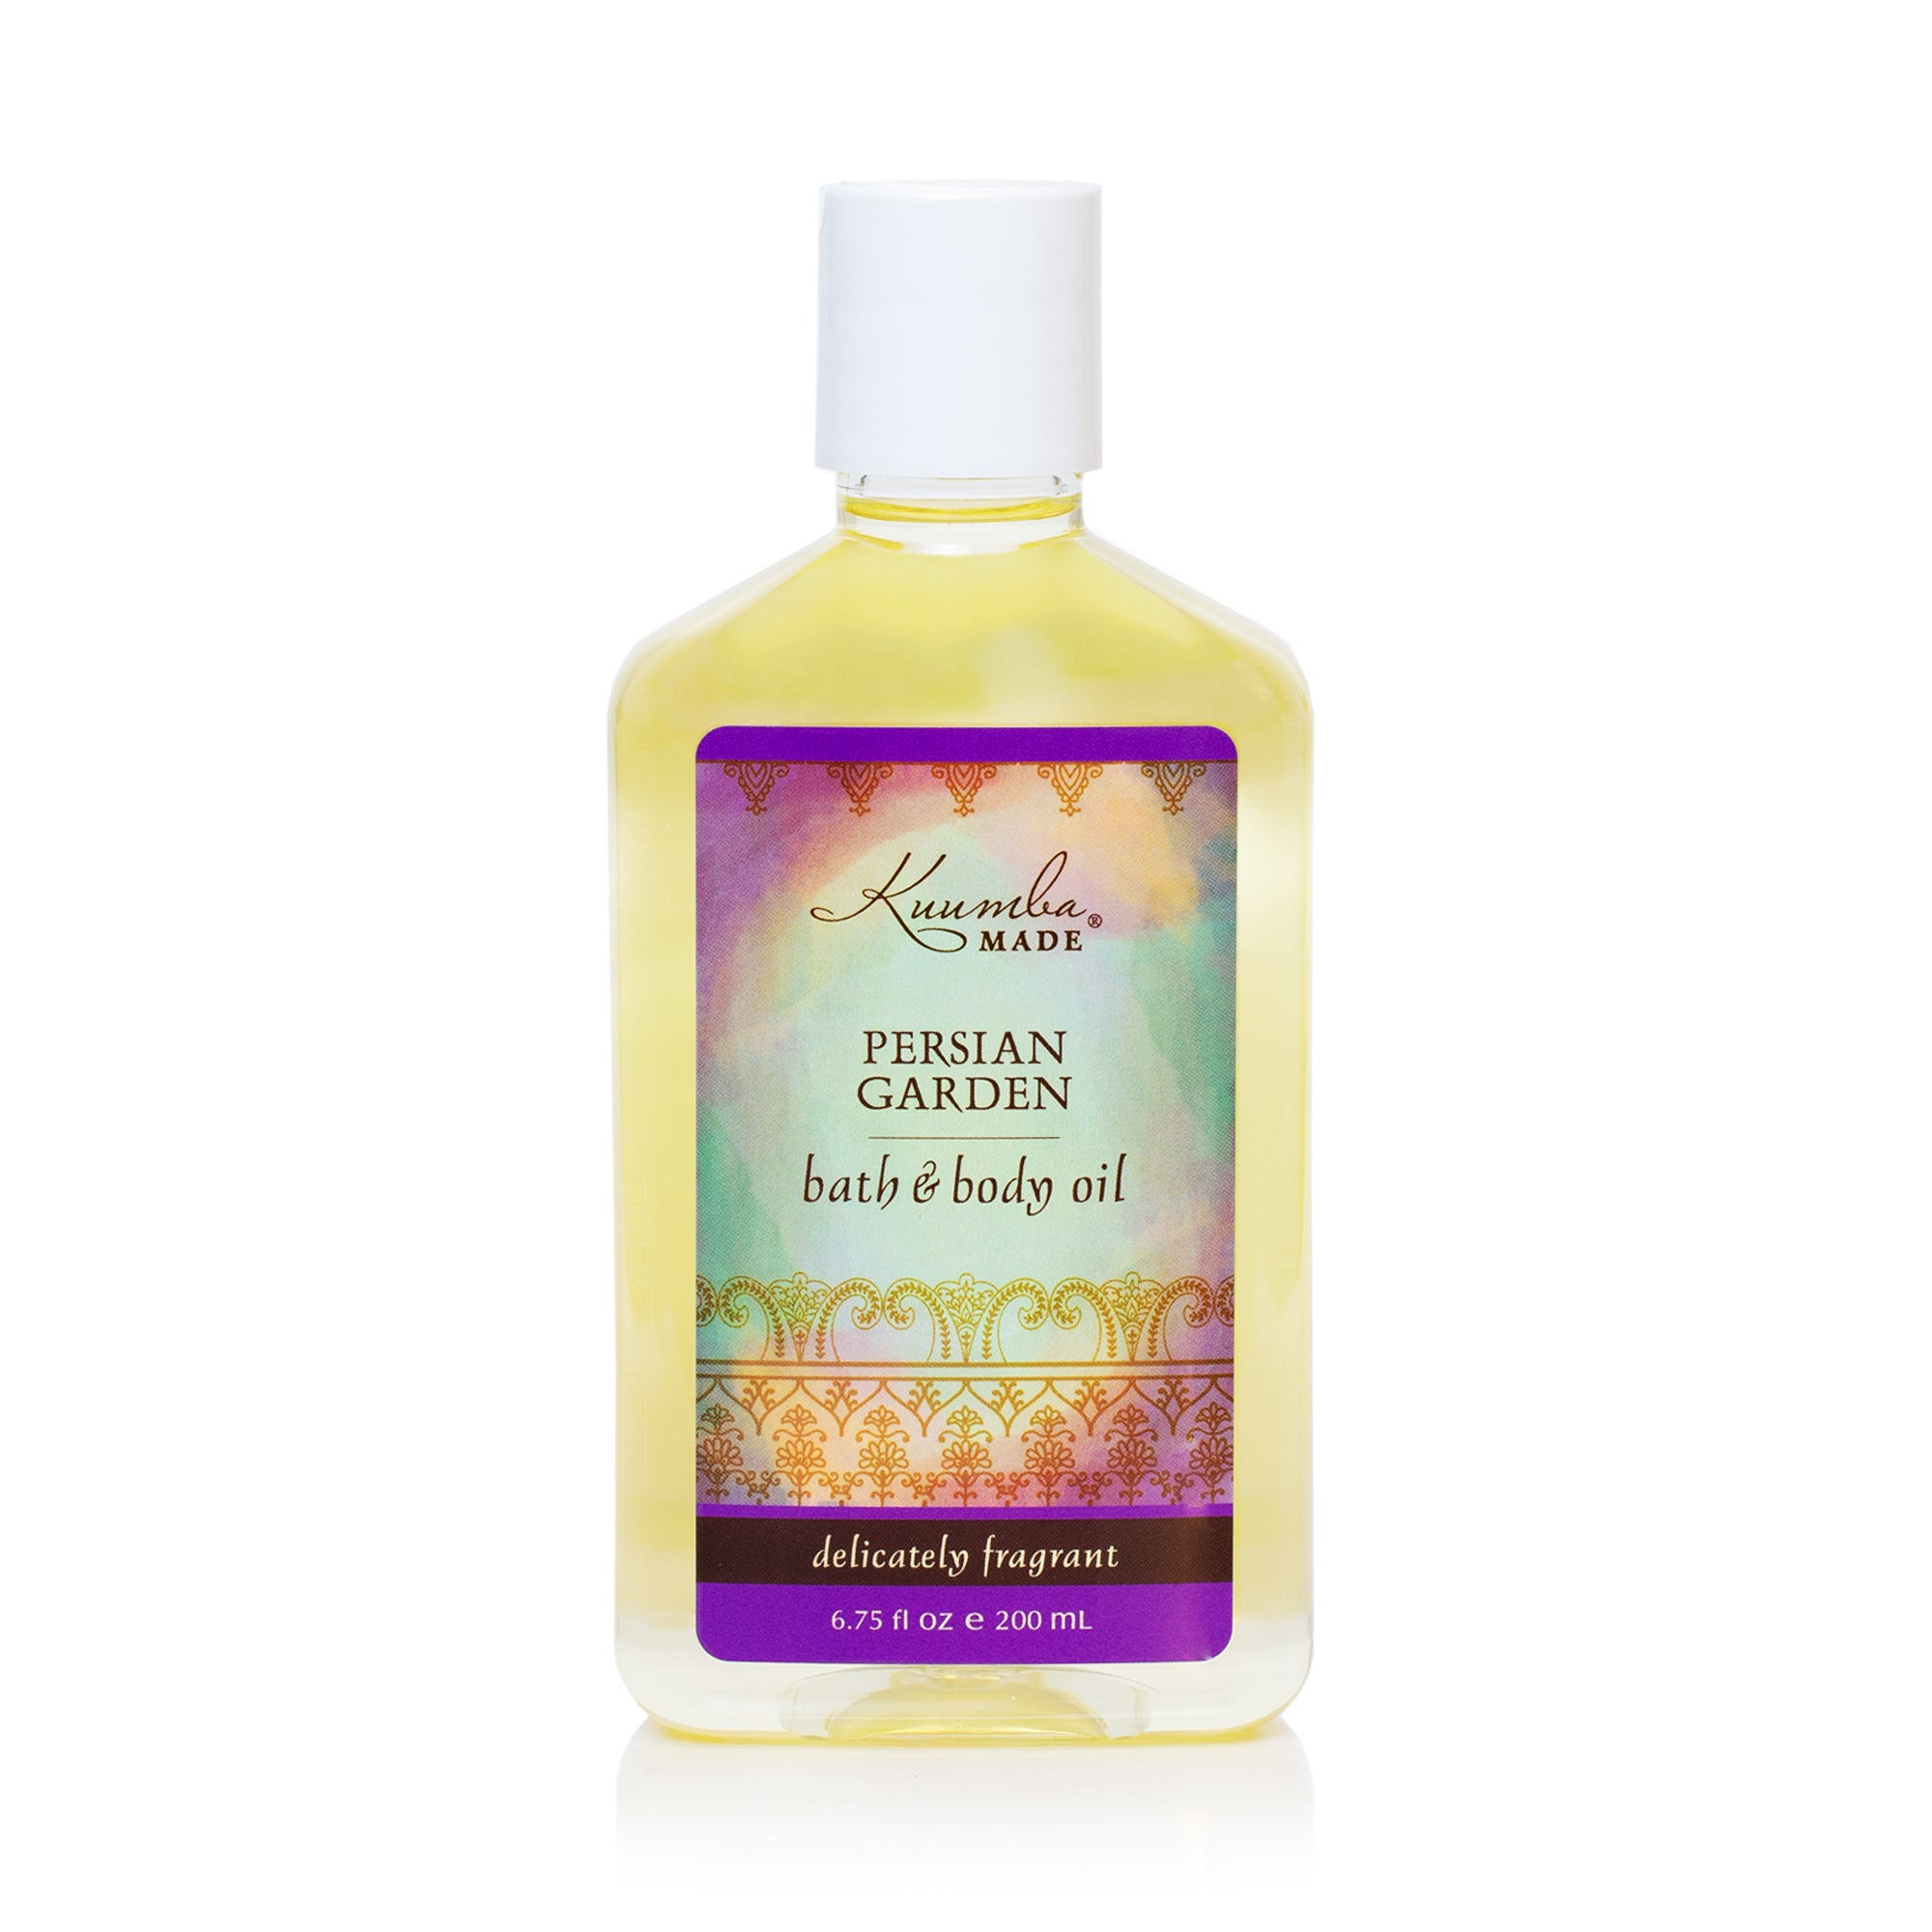 Persian Garden Bath & Body Oil